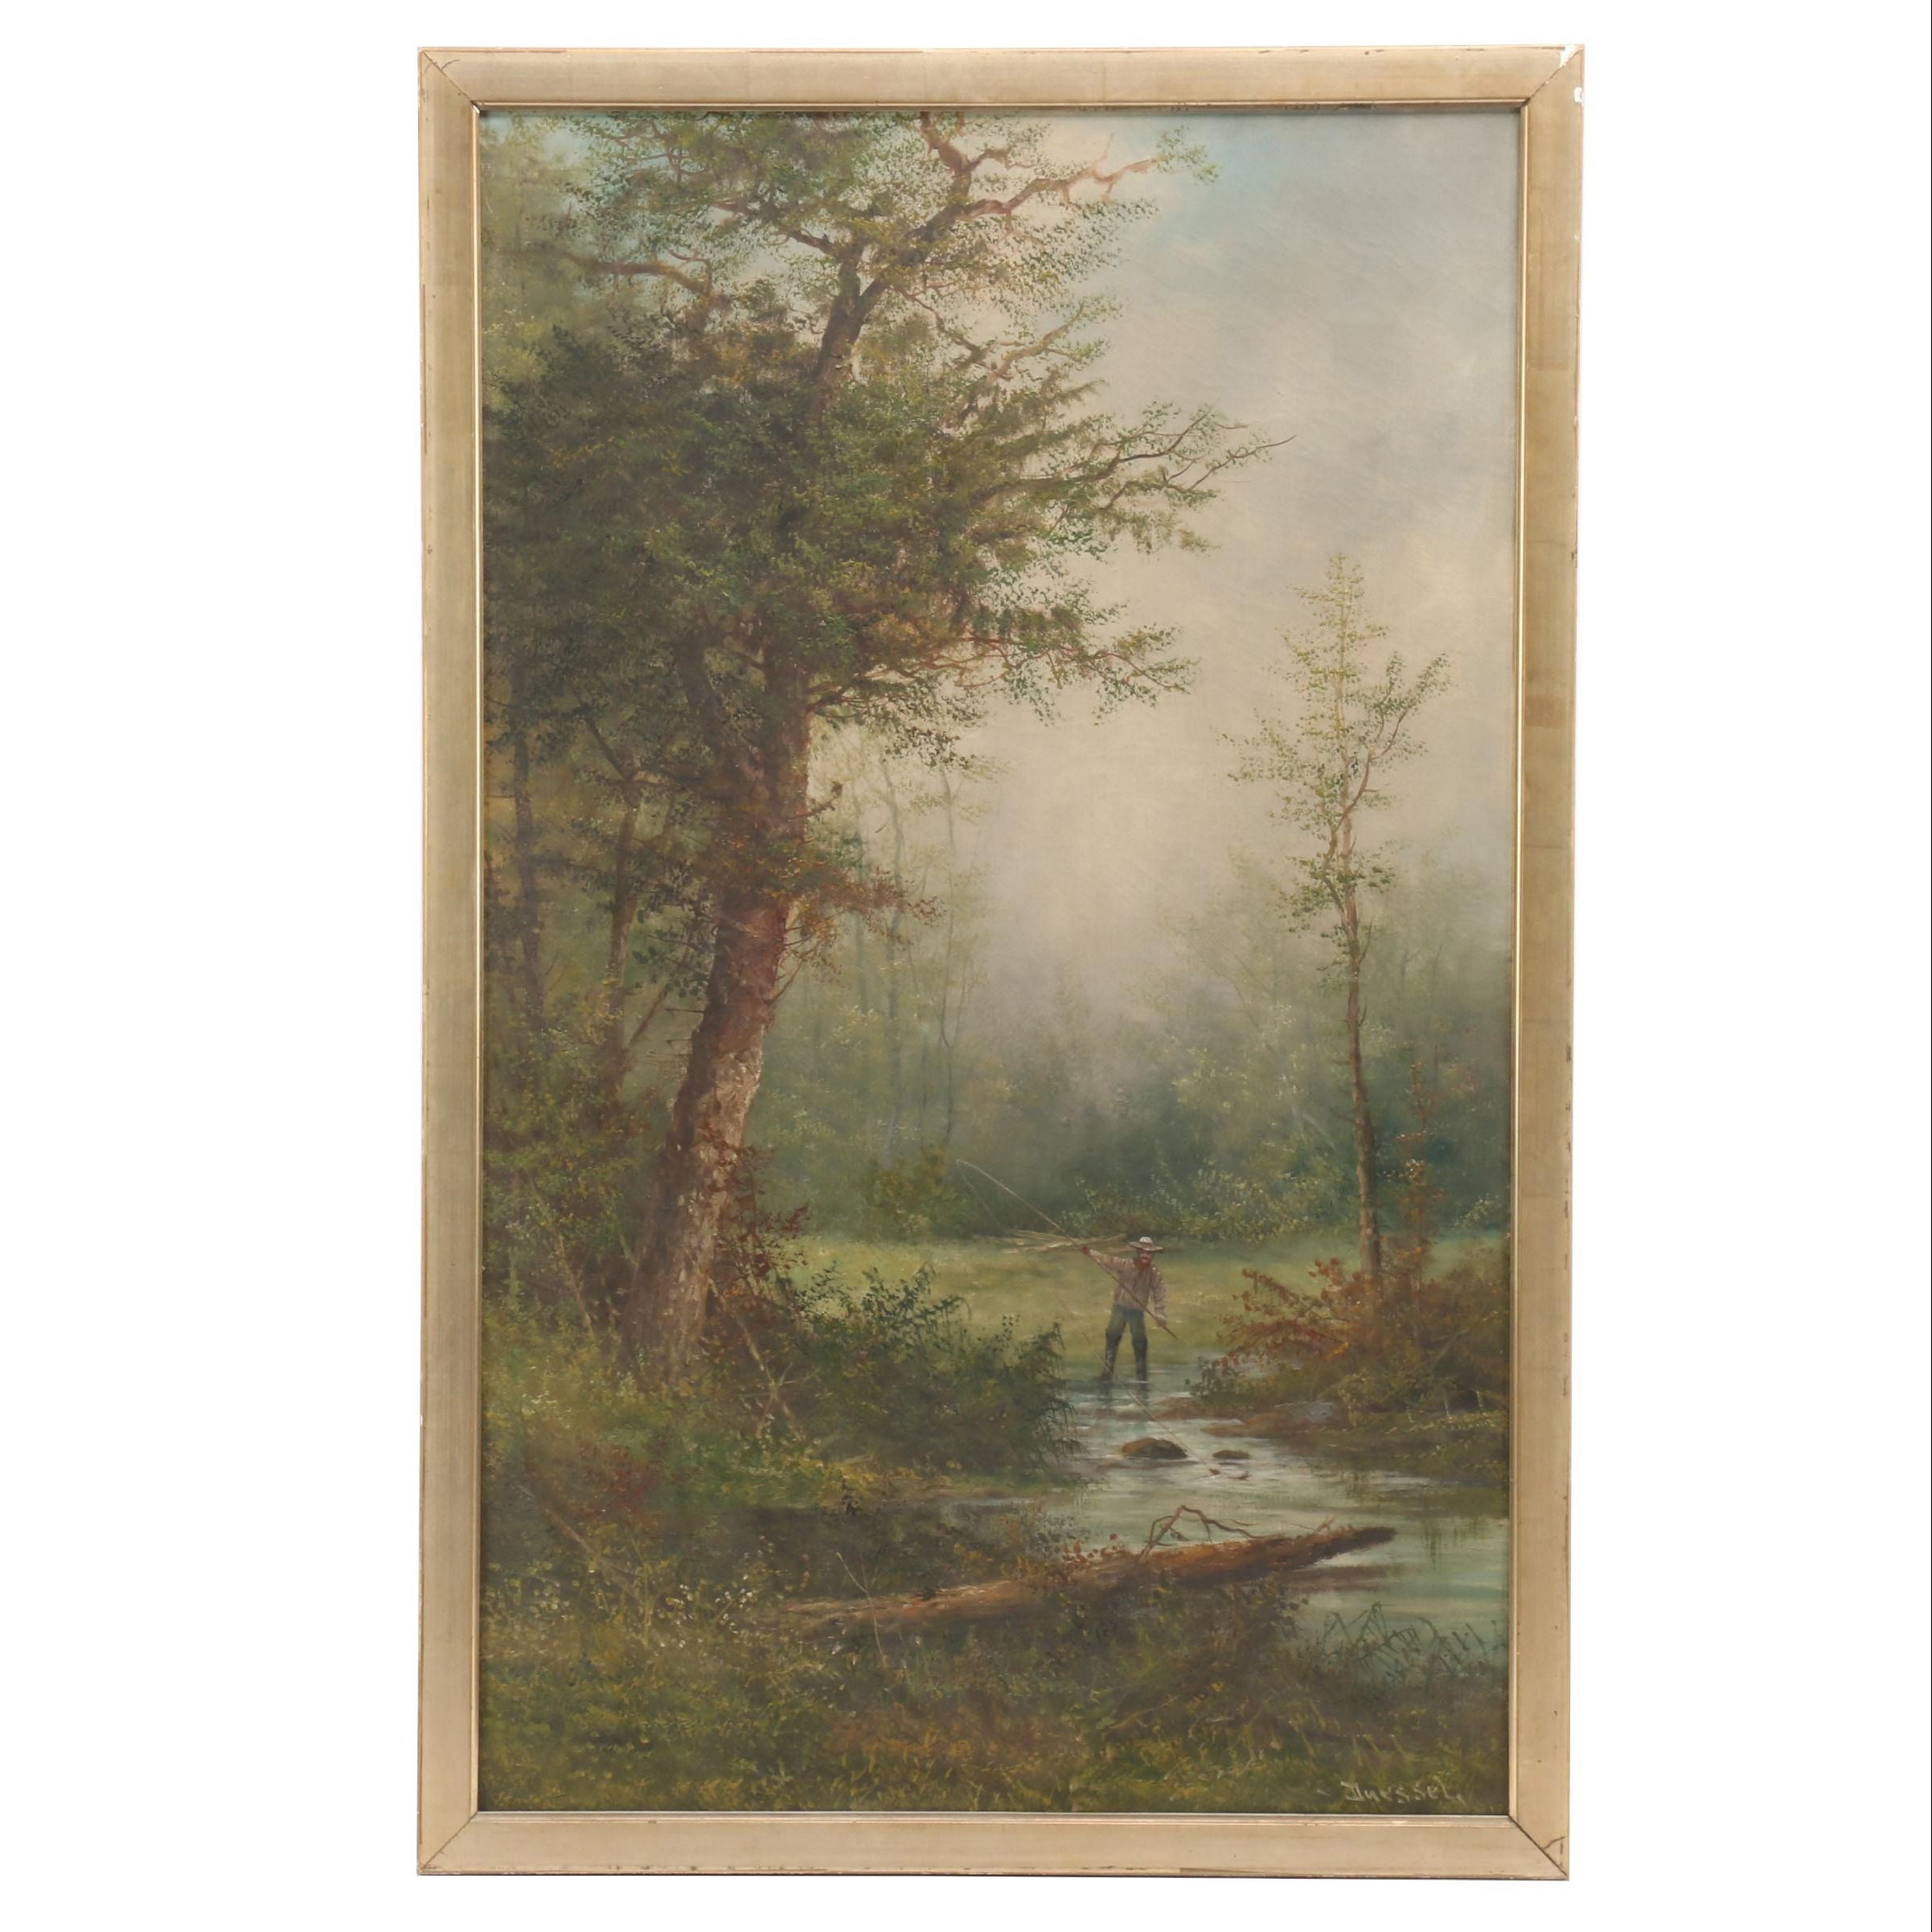 Duessel Late 19th Century River Landscape Oil Painting